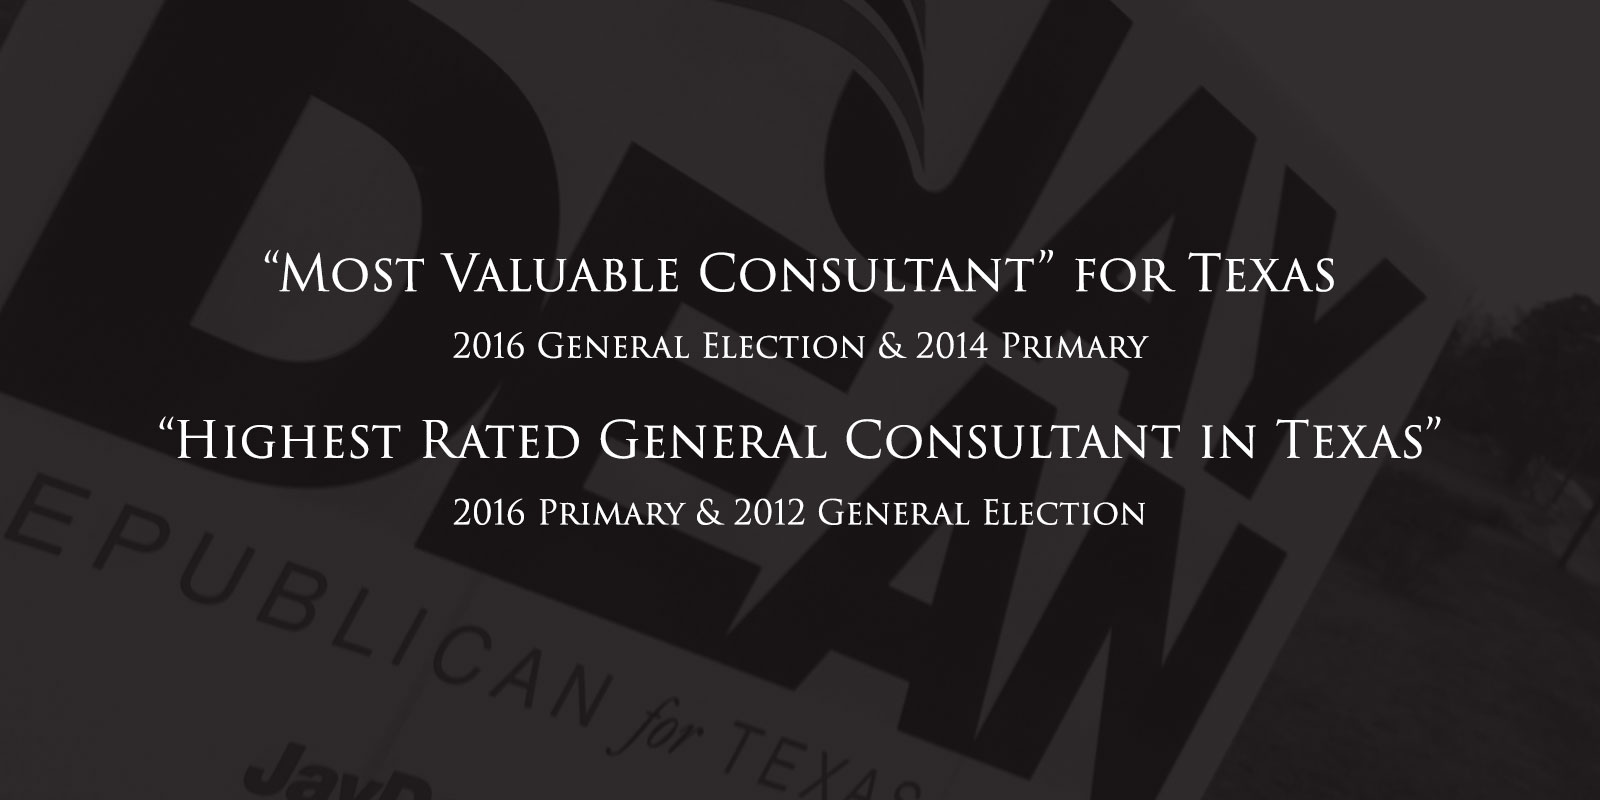 """Most Valuable Consultant"" for Texas and ""Highest Rated General Consultant in Texas"""